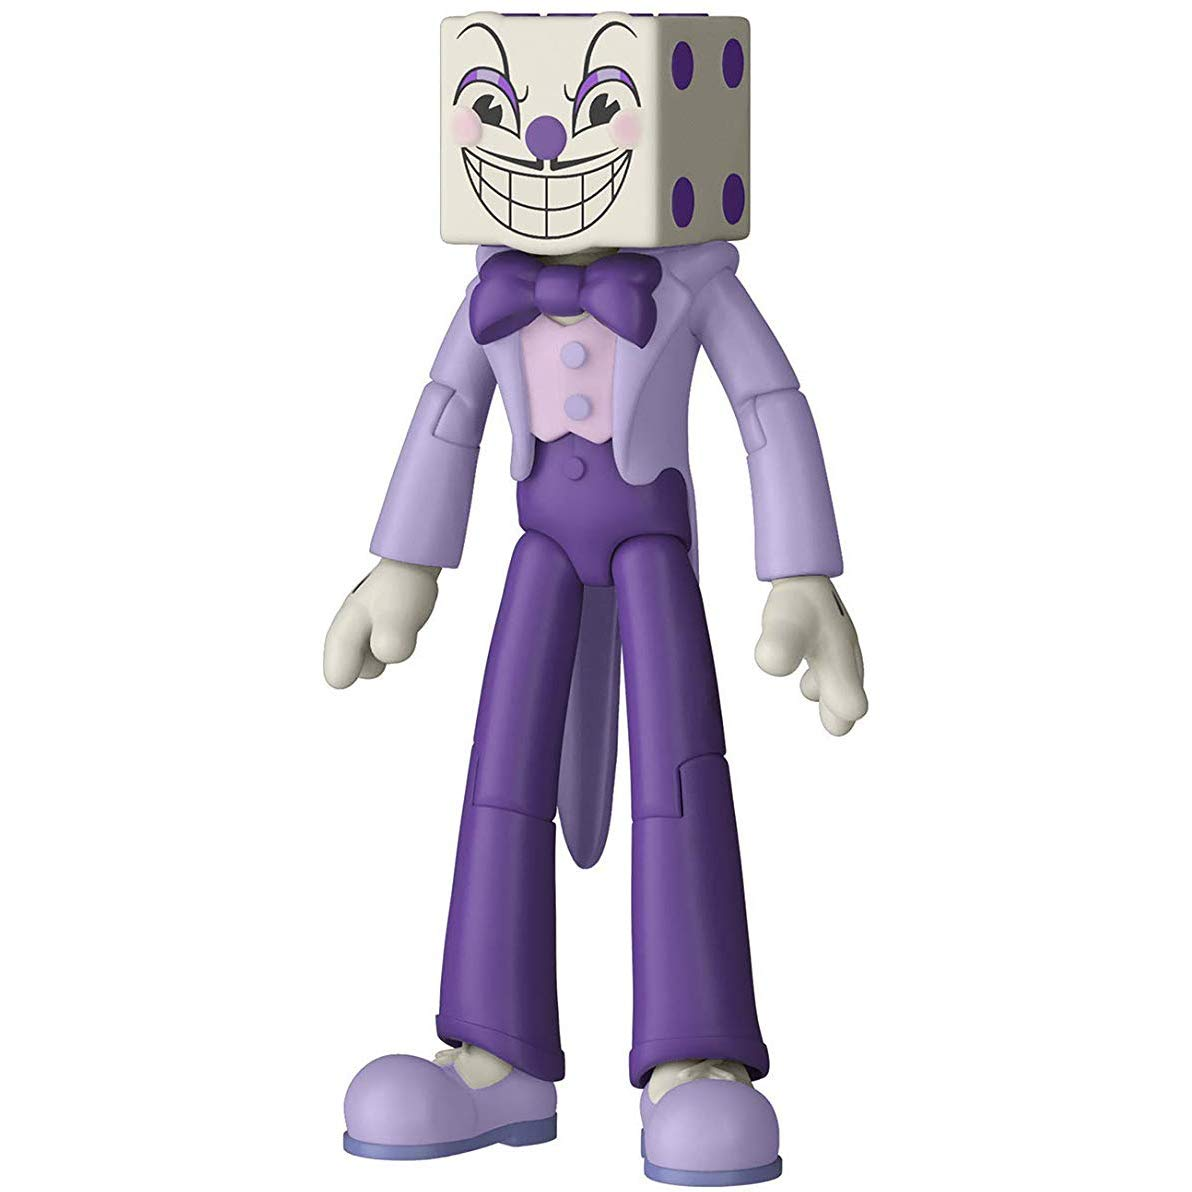 Amazon.com: King Dice: Funko Cuphead x Mini Action Figure + 1 Video Games Themed Trading Card Bundle [33422]: Toys & Games